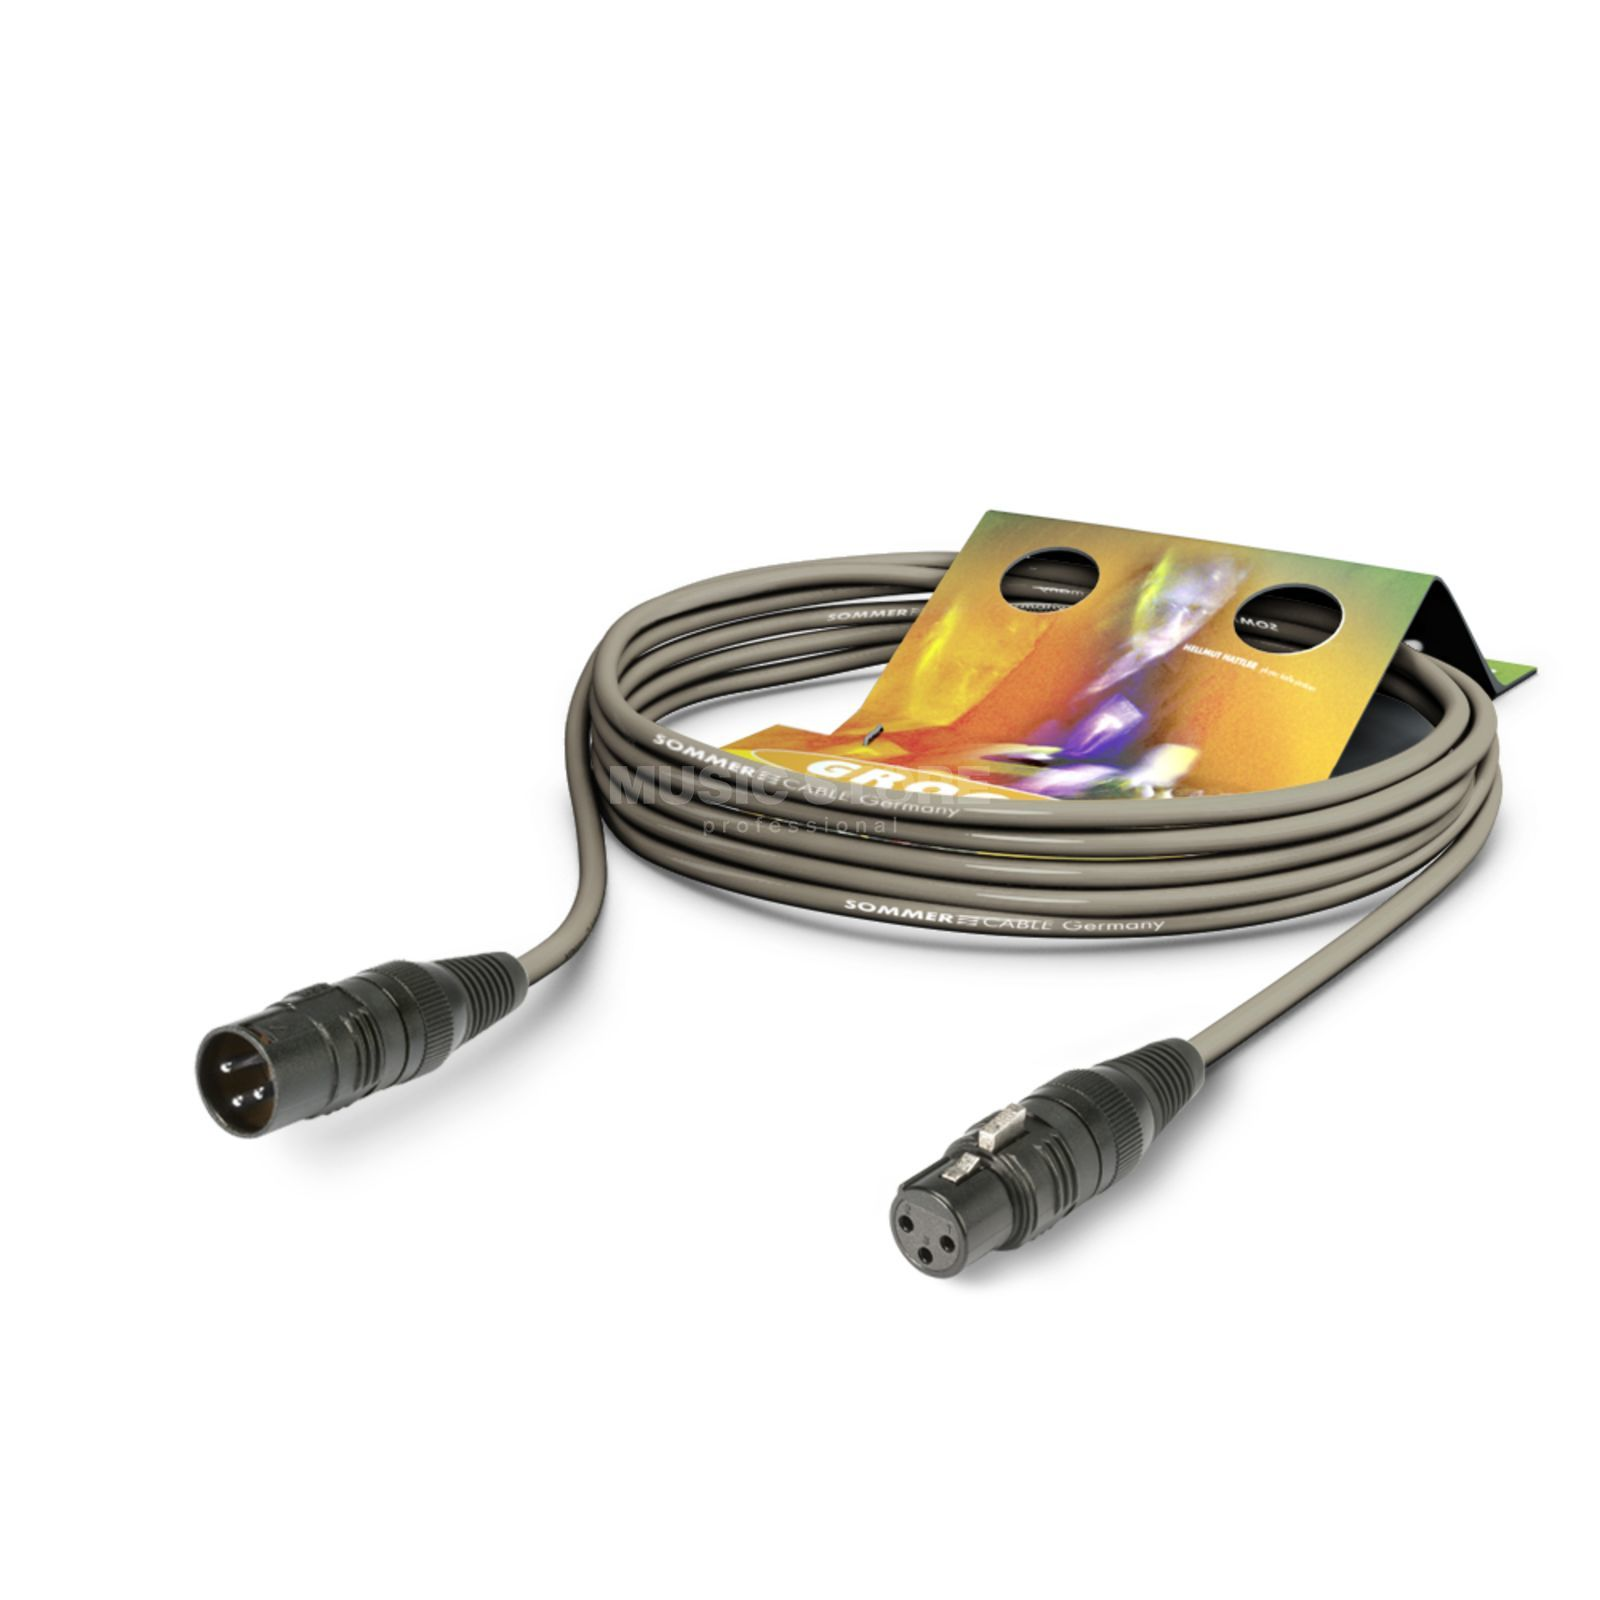 Sommer Cable Mikrofonkabel SC-STAGE 1m grau HICON, SGCE-0100 GR Produktbild